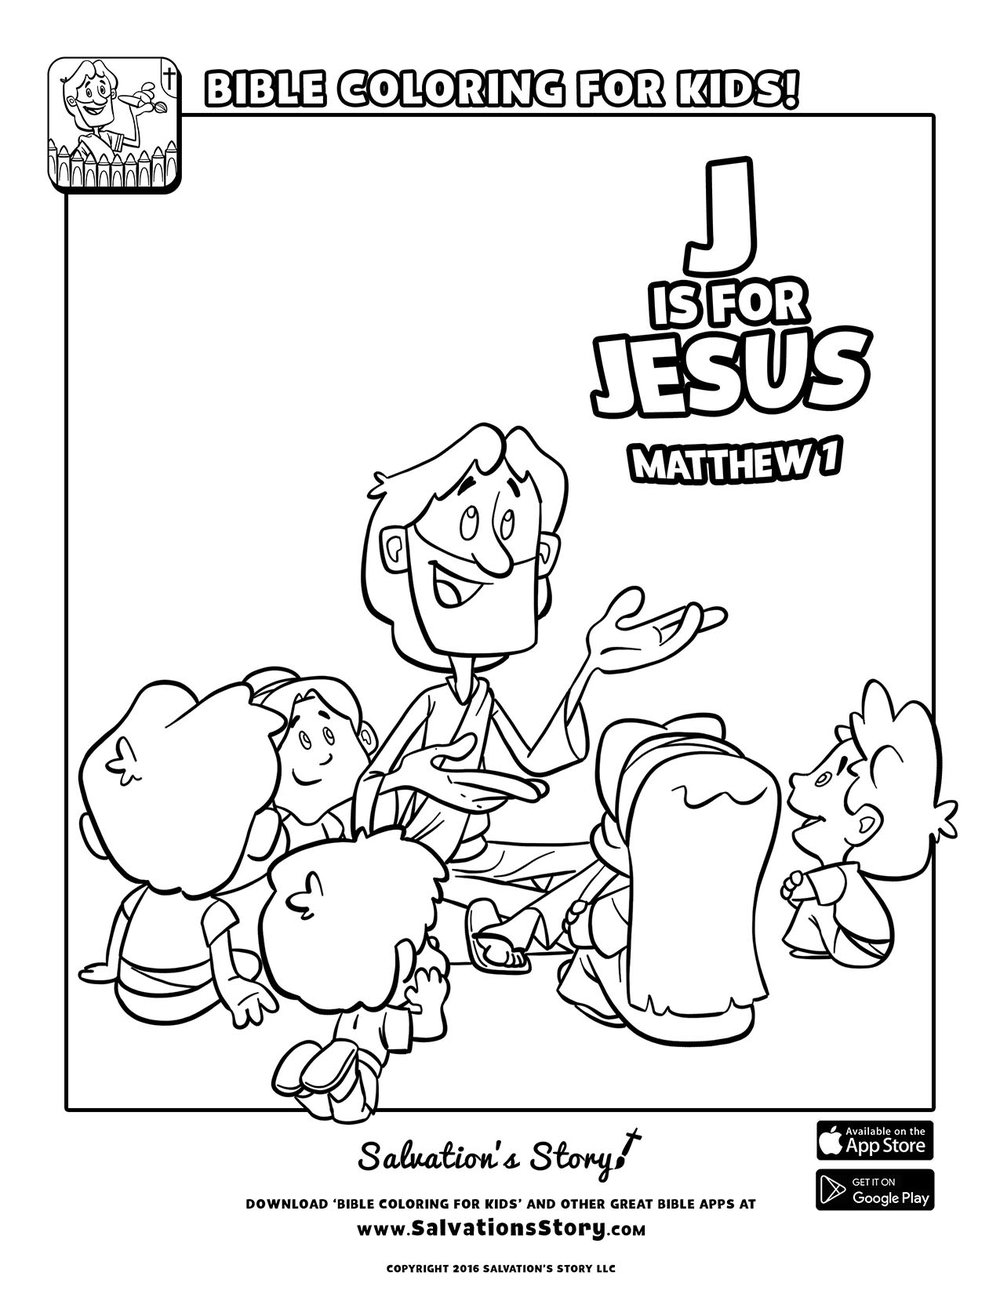 J is for Jesus.jpg